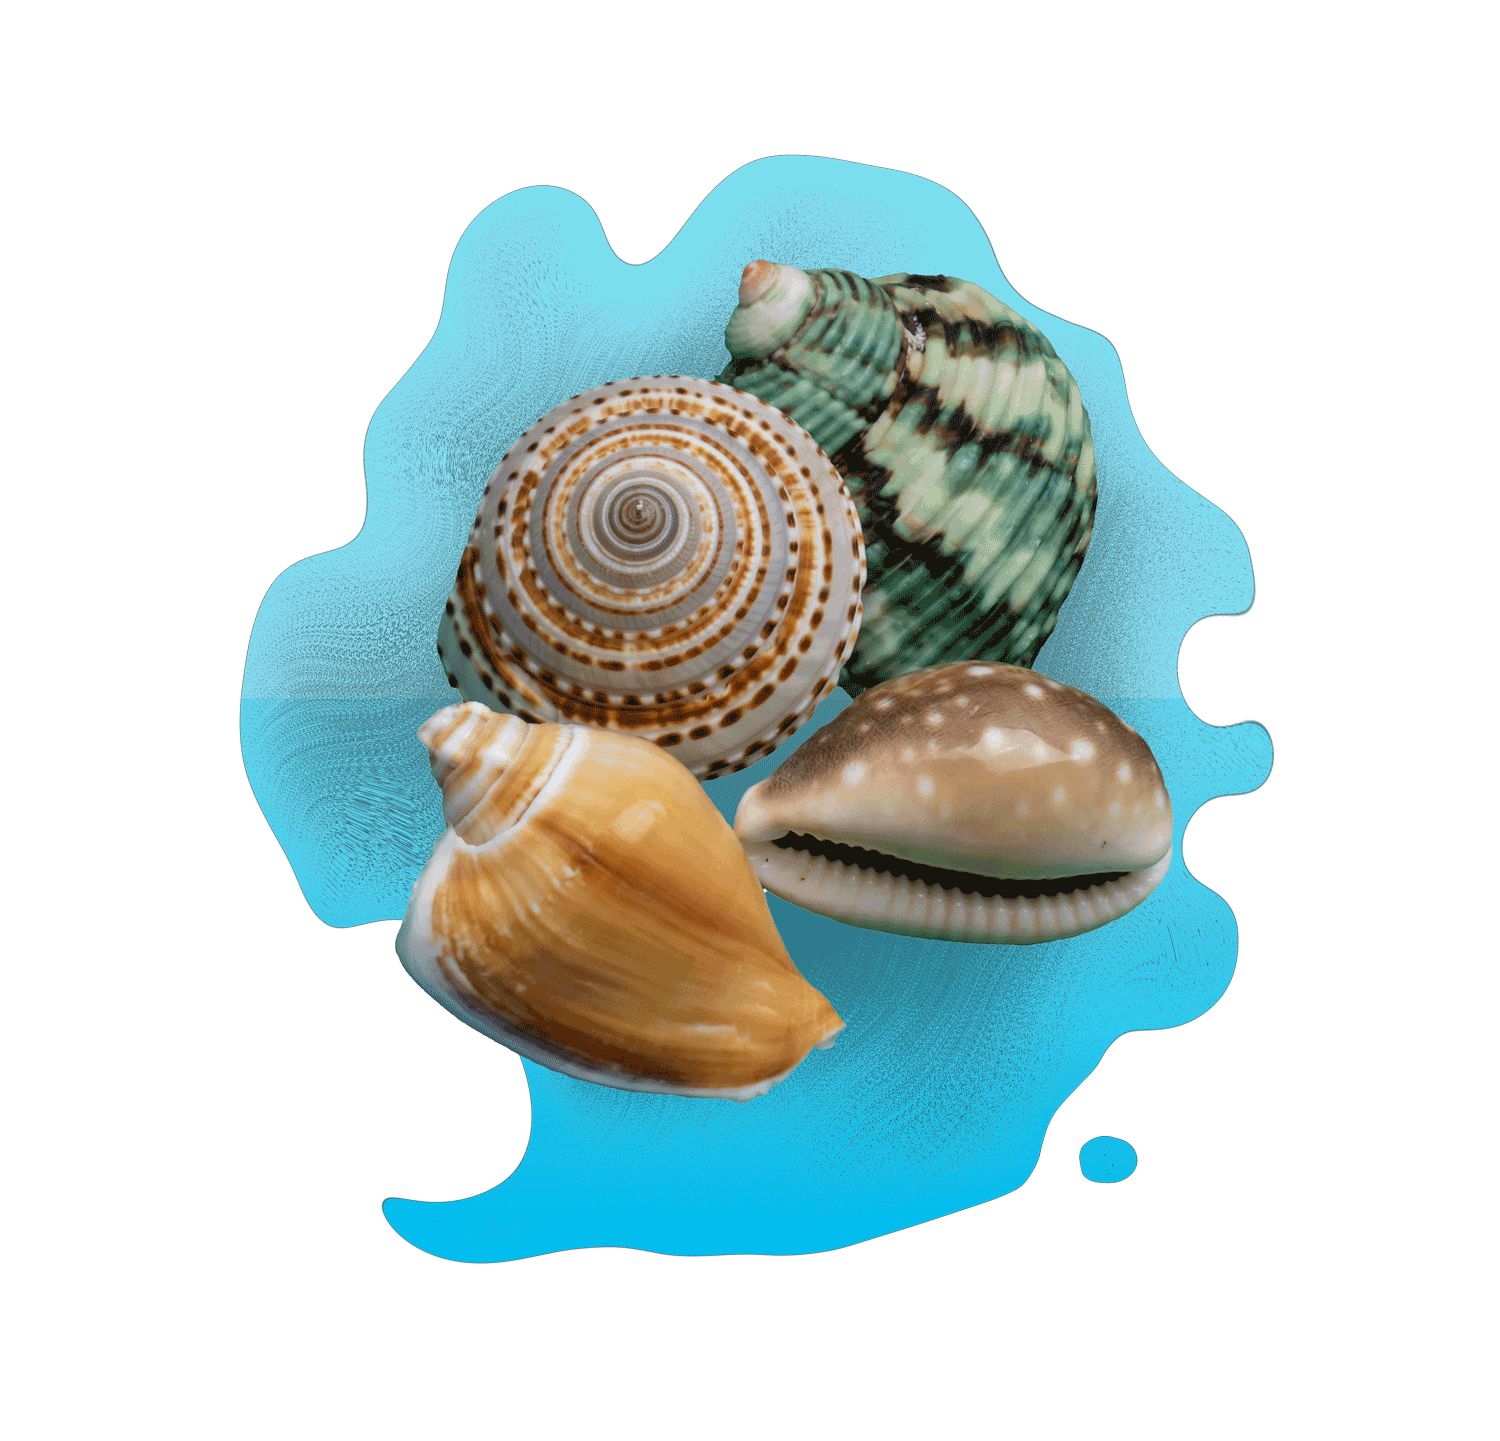 product art in seashells with frosted glass